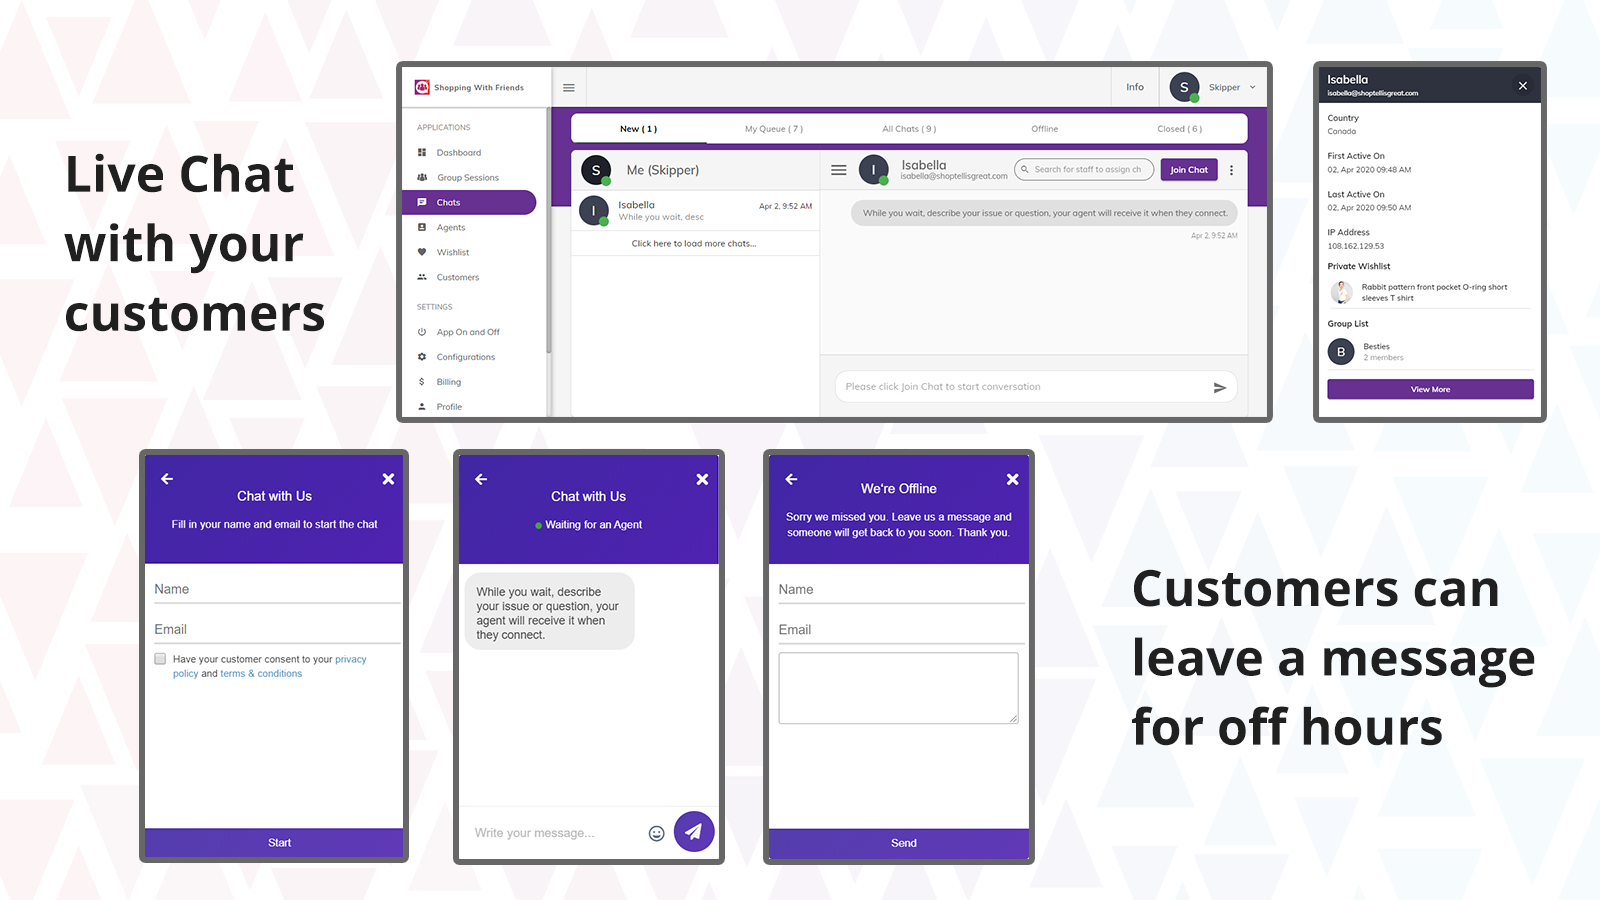 Live Chat with your customer